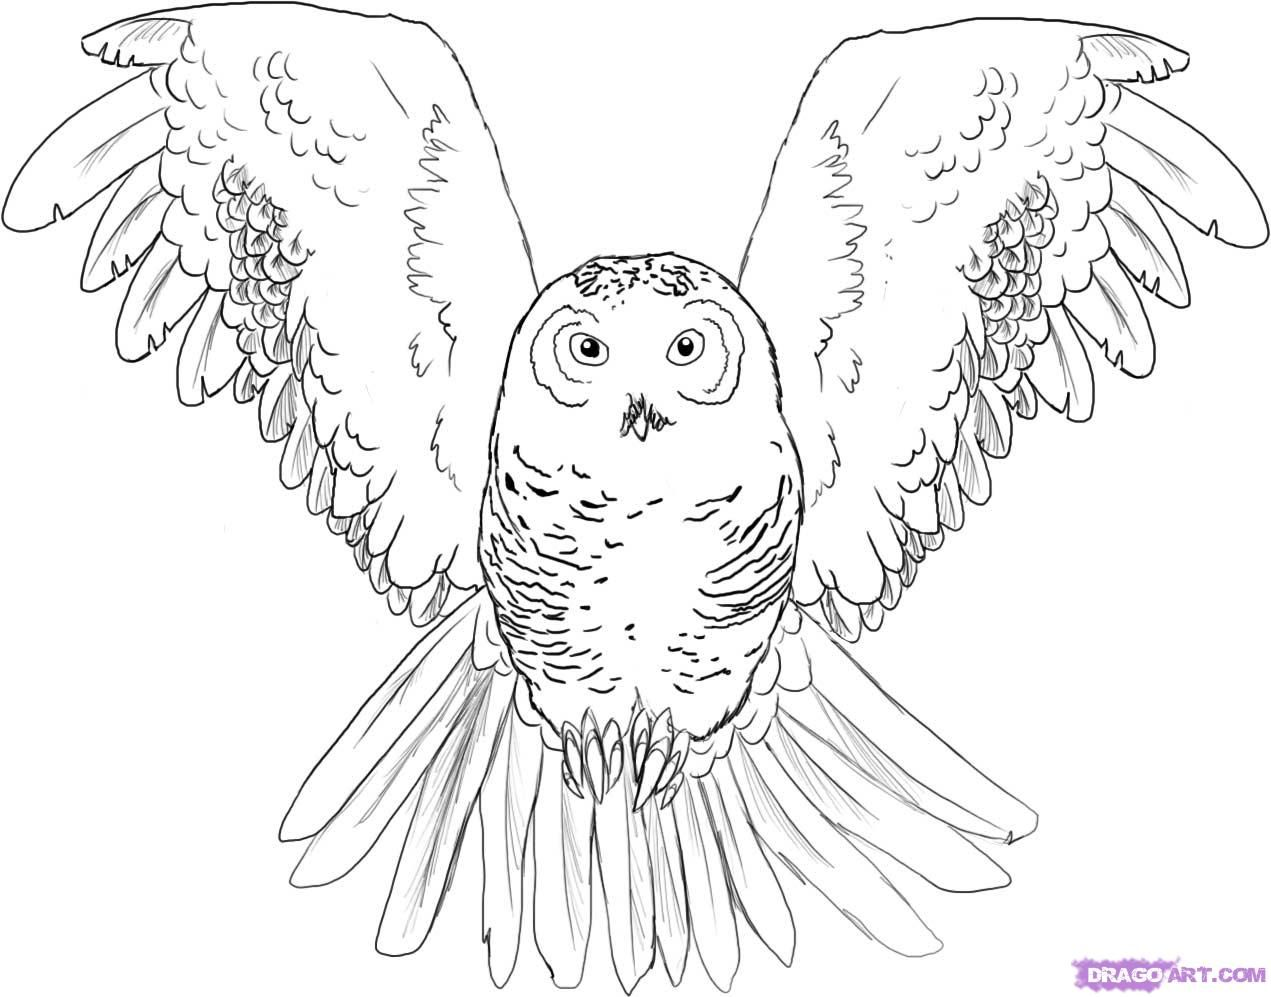 - Painless Advices How To Draw An Owl Easy Step By Step How To Draw